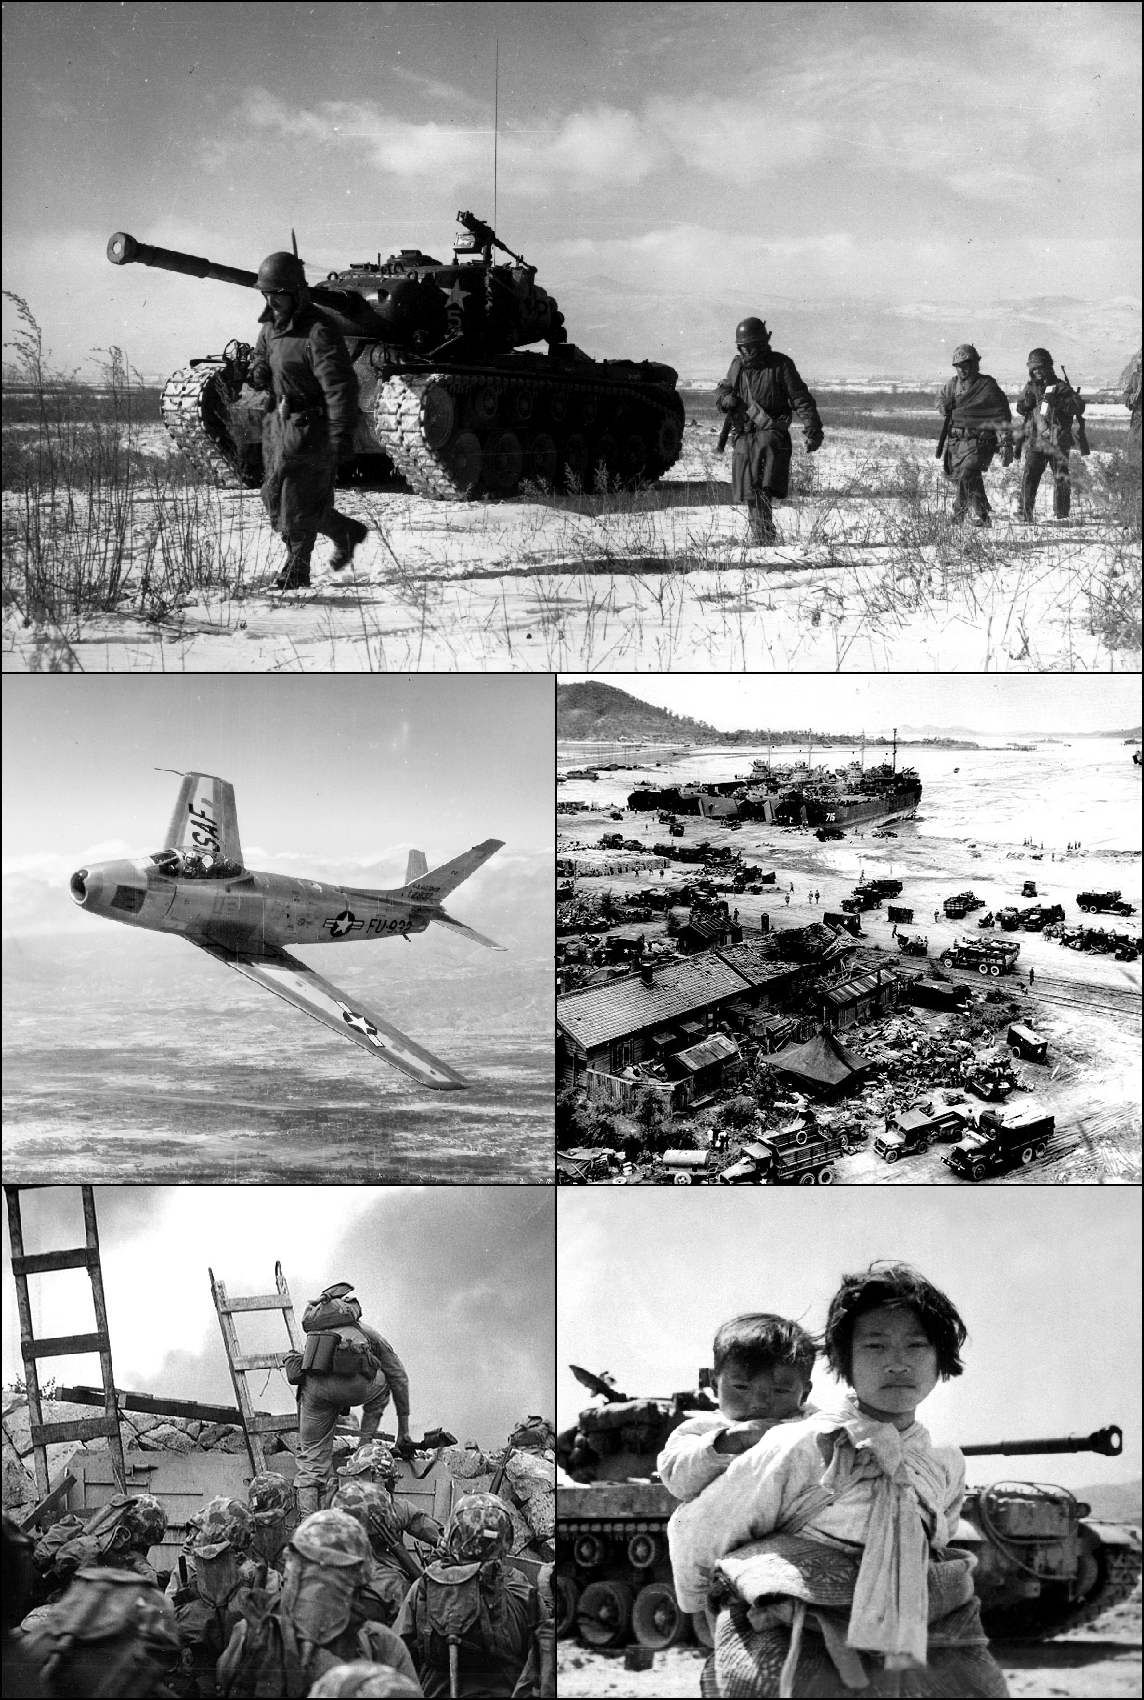 https://upload.wikimedia.org/wikipedia/commons/c/ca/Korean_War_Montage_2.png